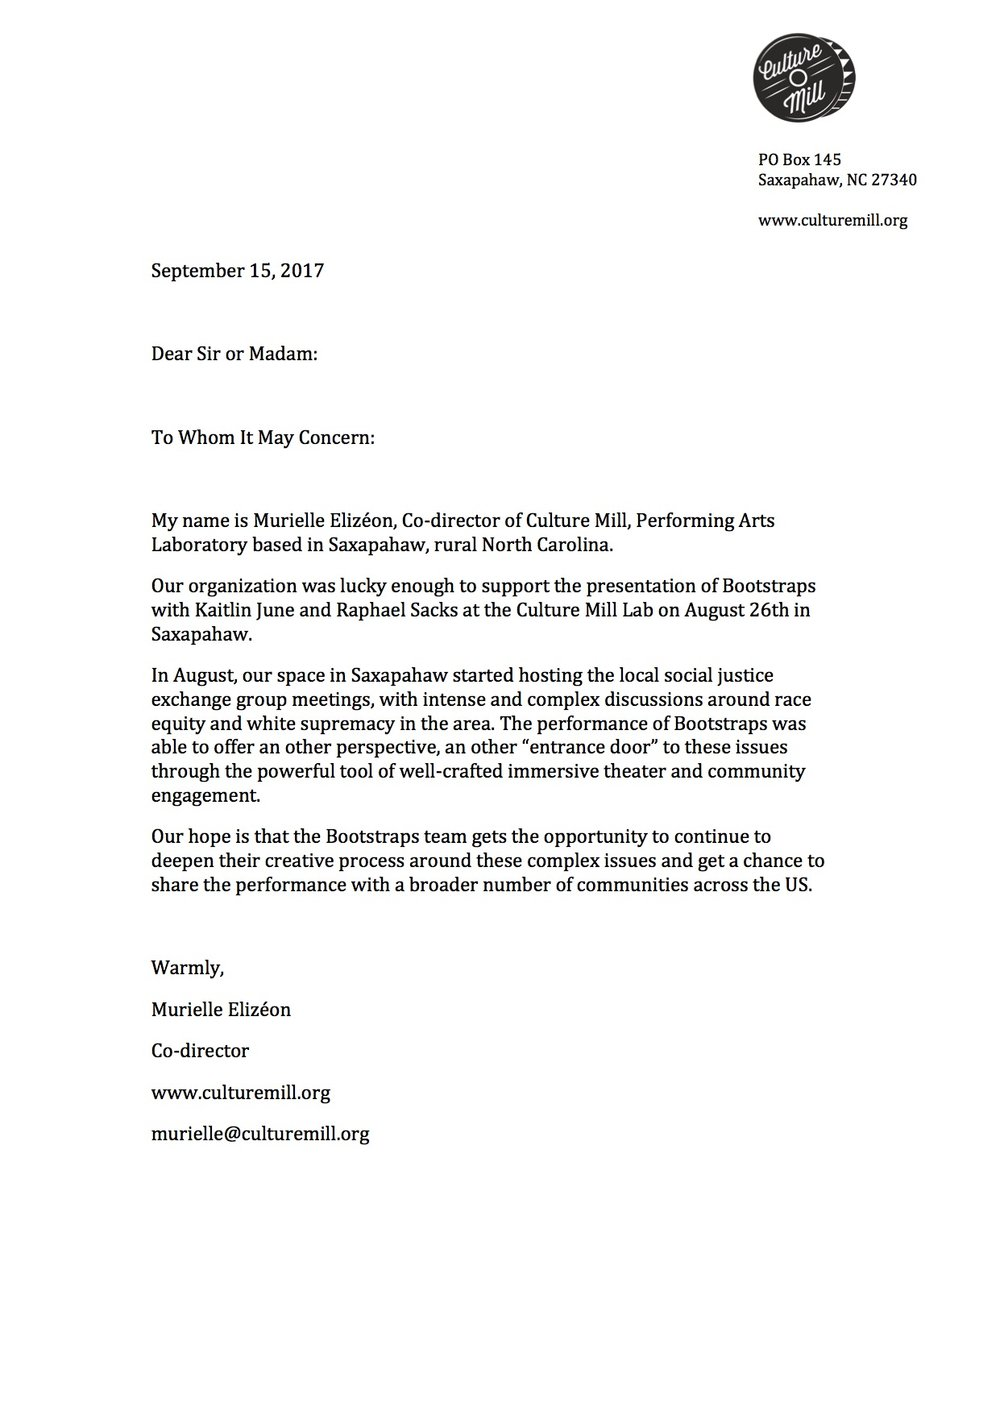 Culture Mill Letter of support(1).jpg